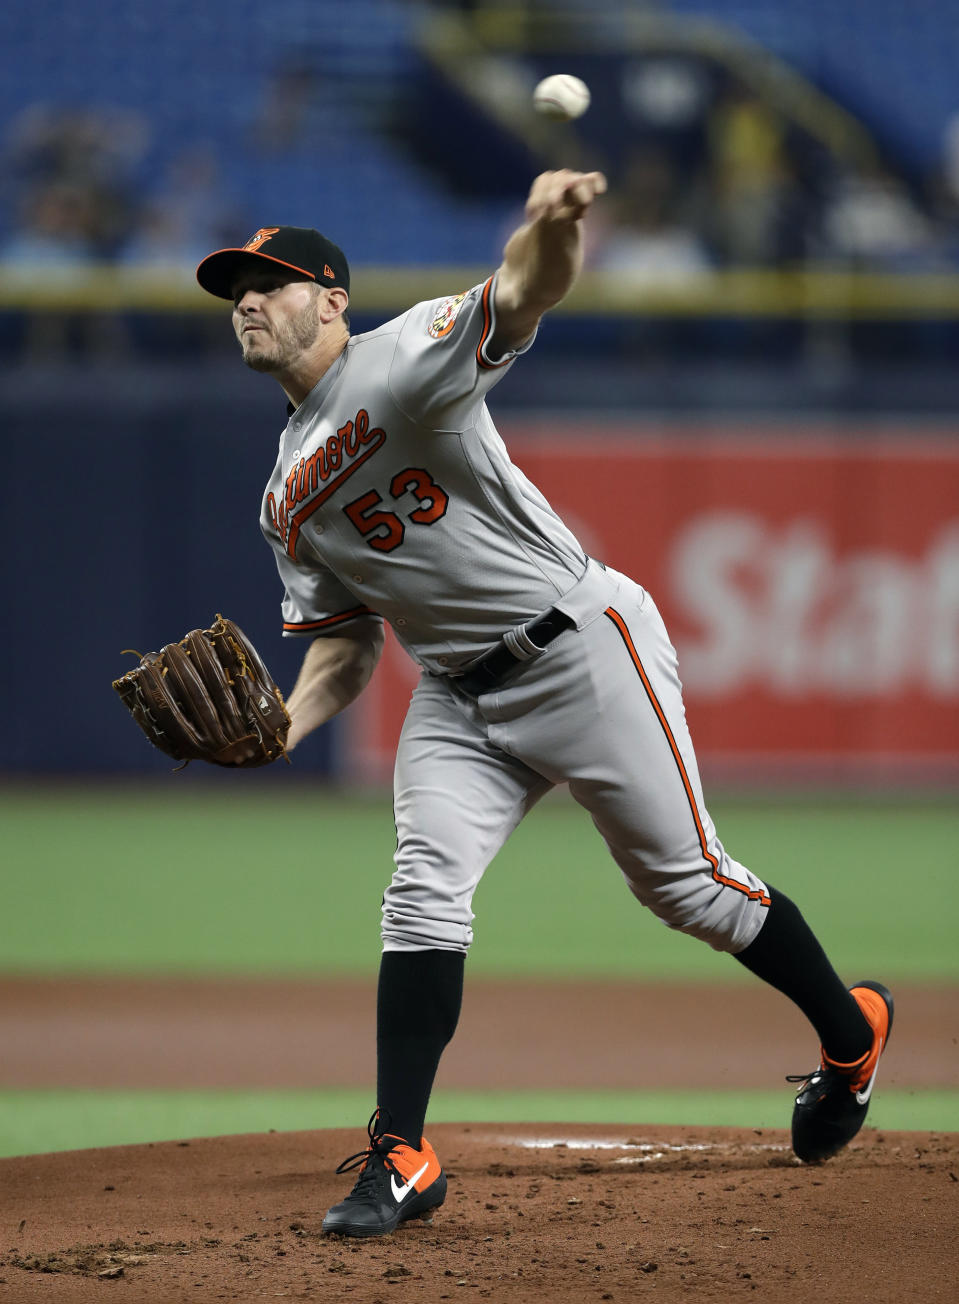 Baltimore Orioles' Ty Blach pitches to the Tampa Bay Rays during the first inning of the first baseball game of a doubleheader Tuesday, Sept. 3, 2019, in St. Petersburg, Fla. (AP Photo/Chris O'Meara)